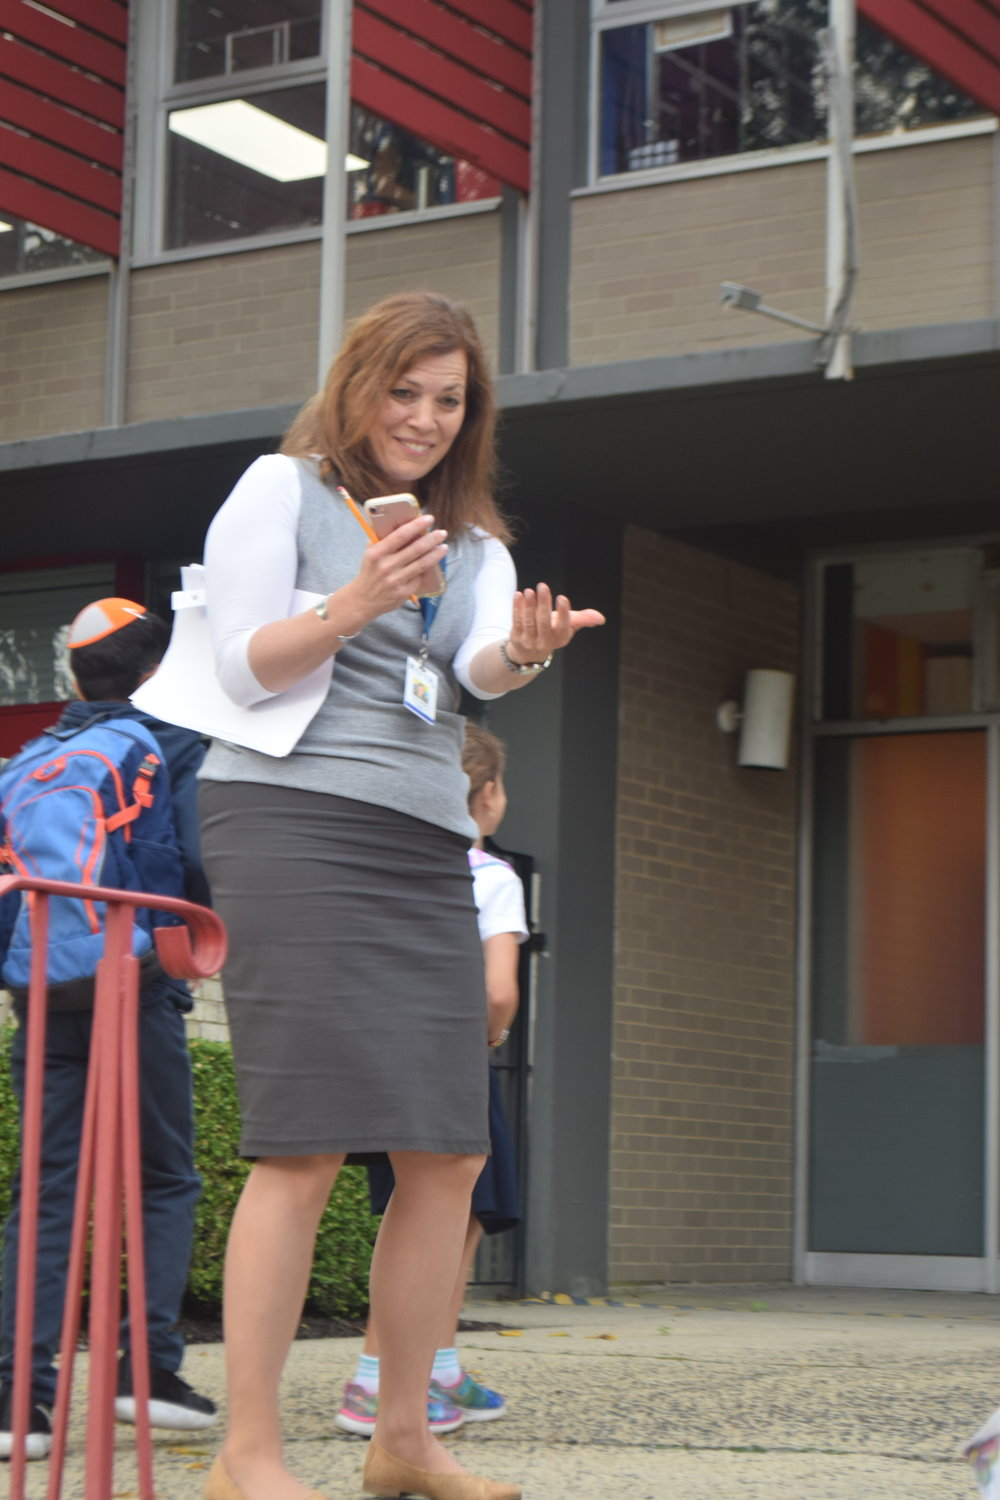 HAFTR Elementary School Assistant Principal Tova Tucker welcomed students back to school.